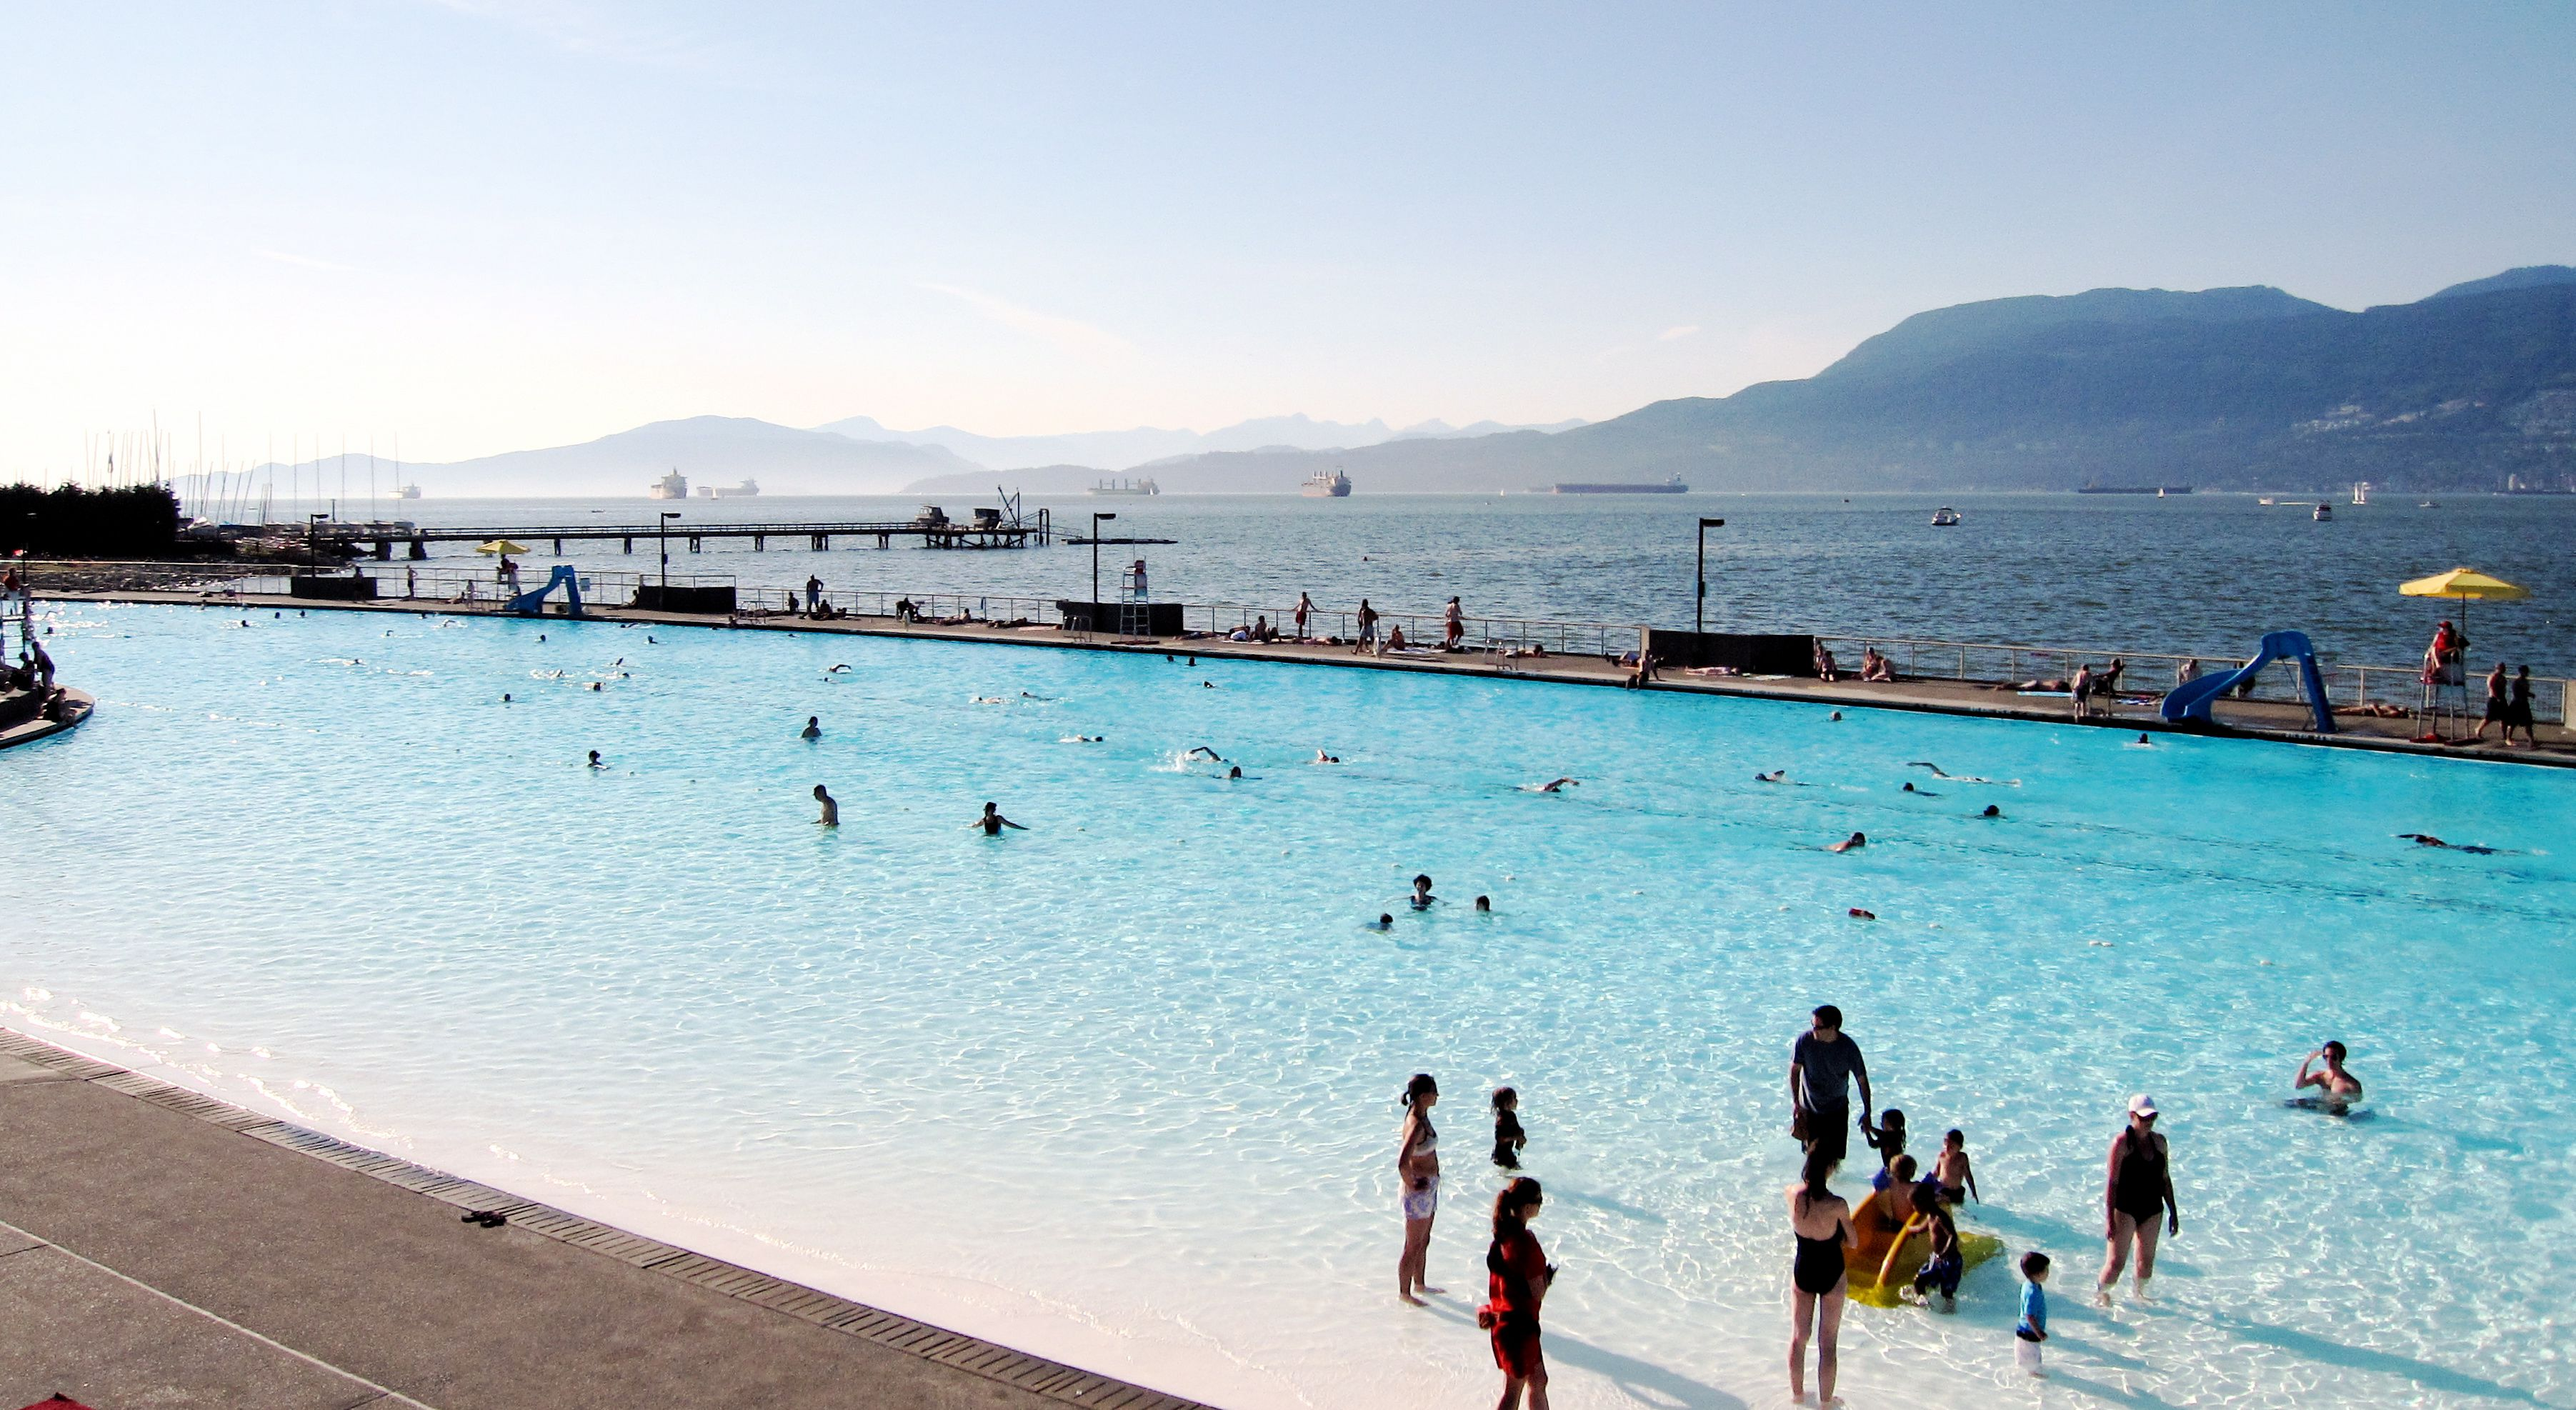 Kits Pool in Vancouver, BC